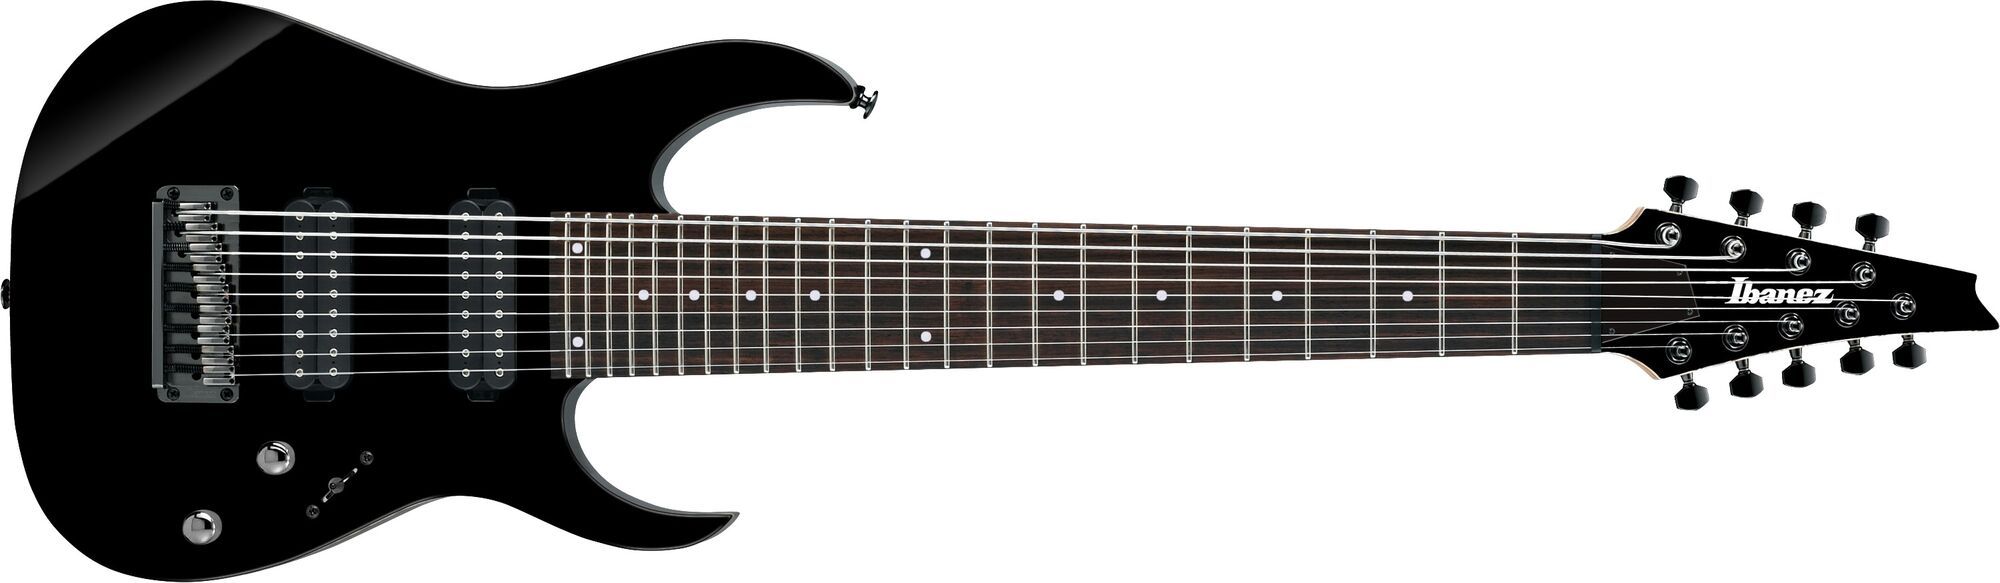 Luxury Ibanez Rg9 Prestige Collection - Best Images for wiring ...